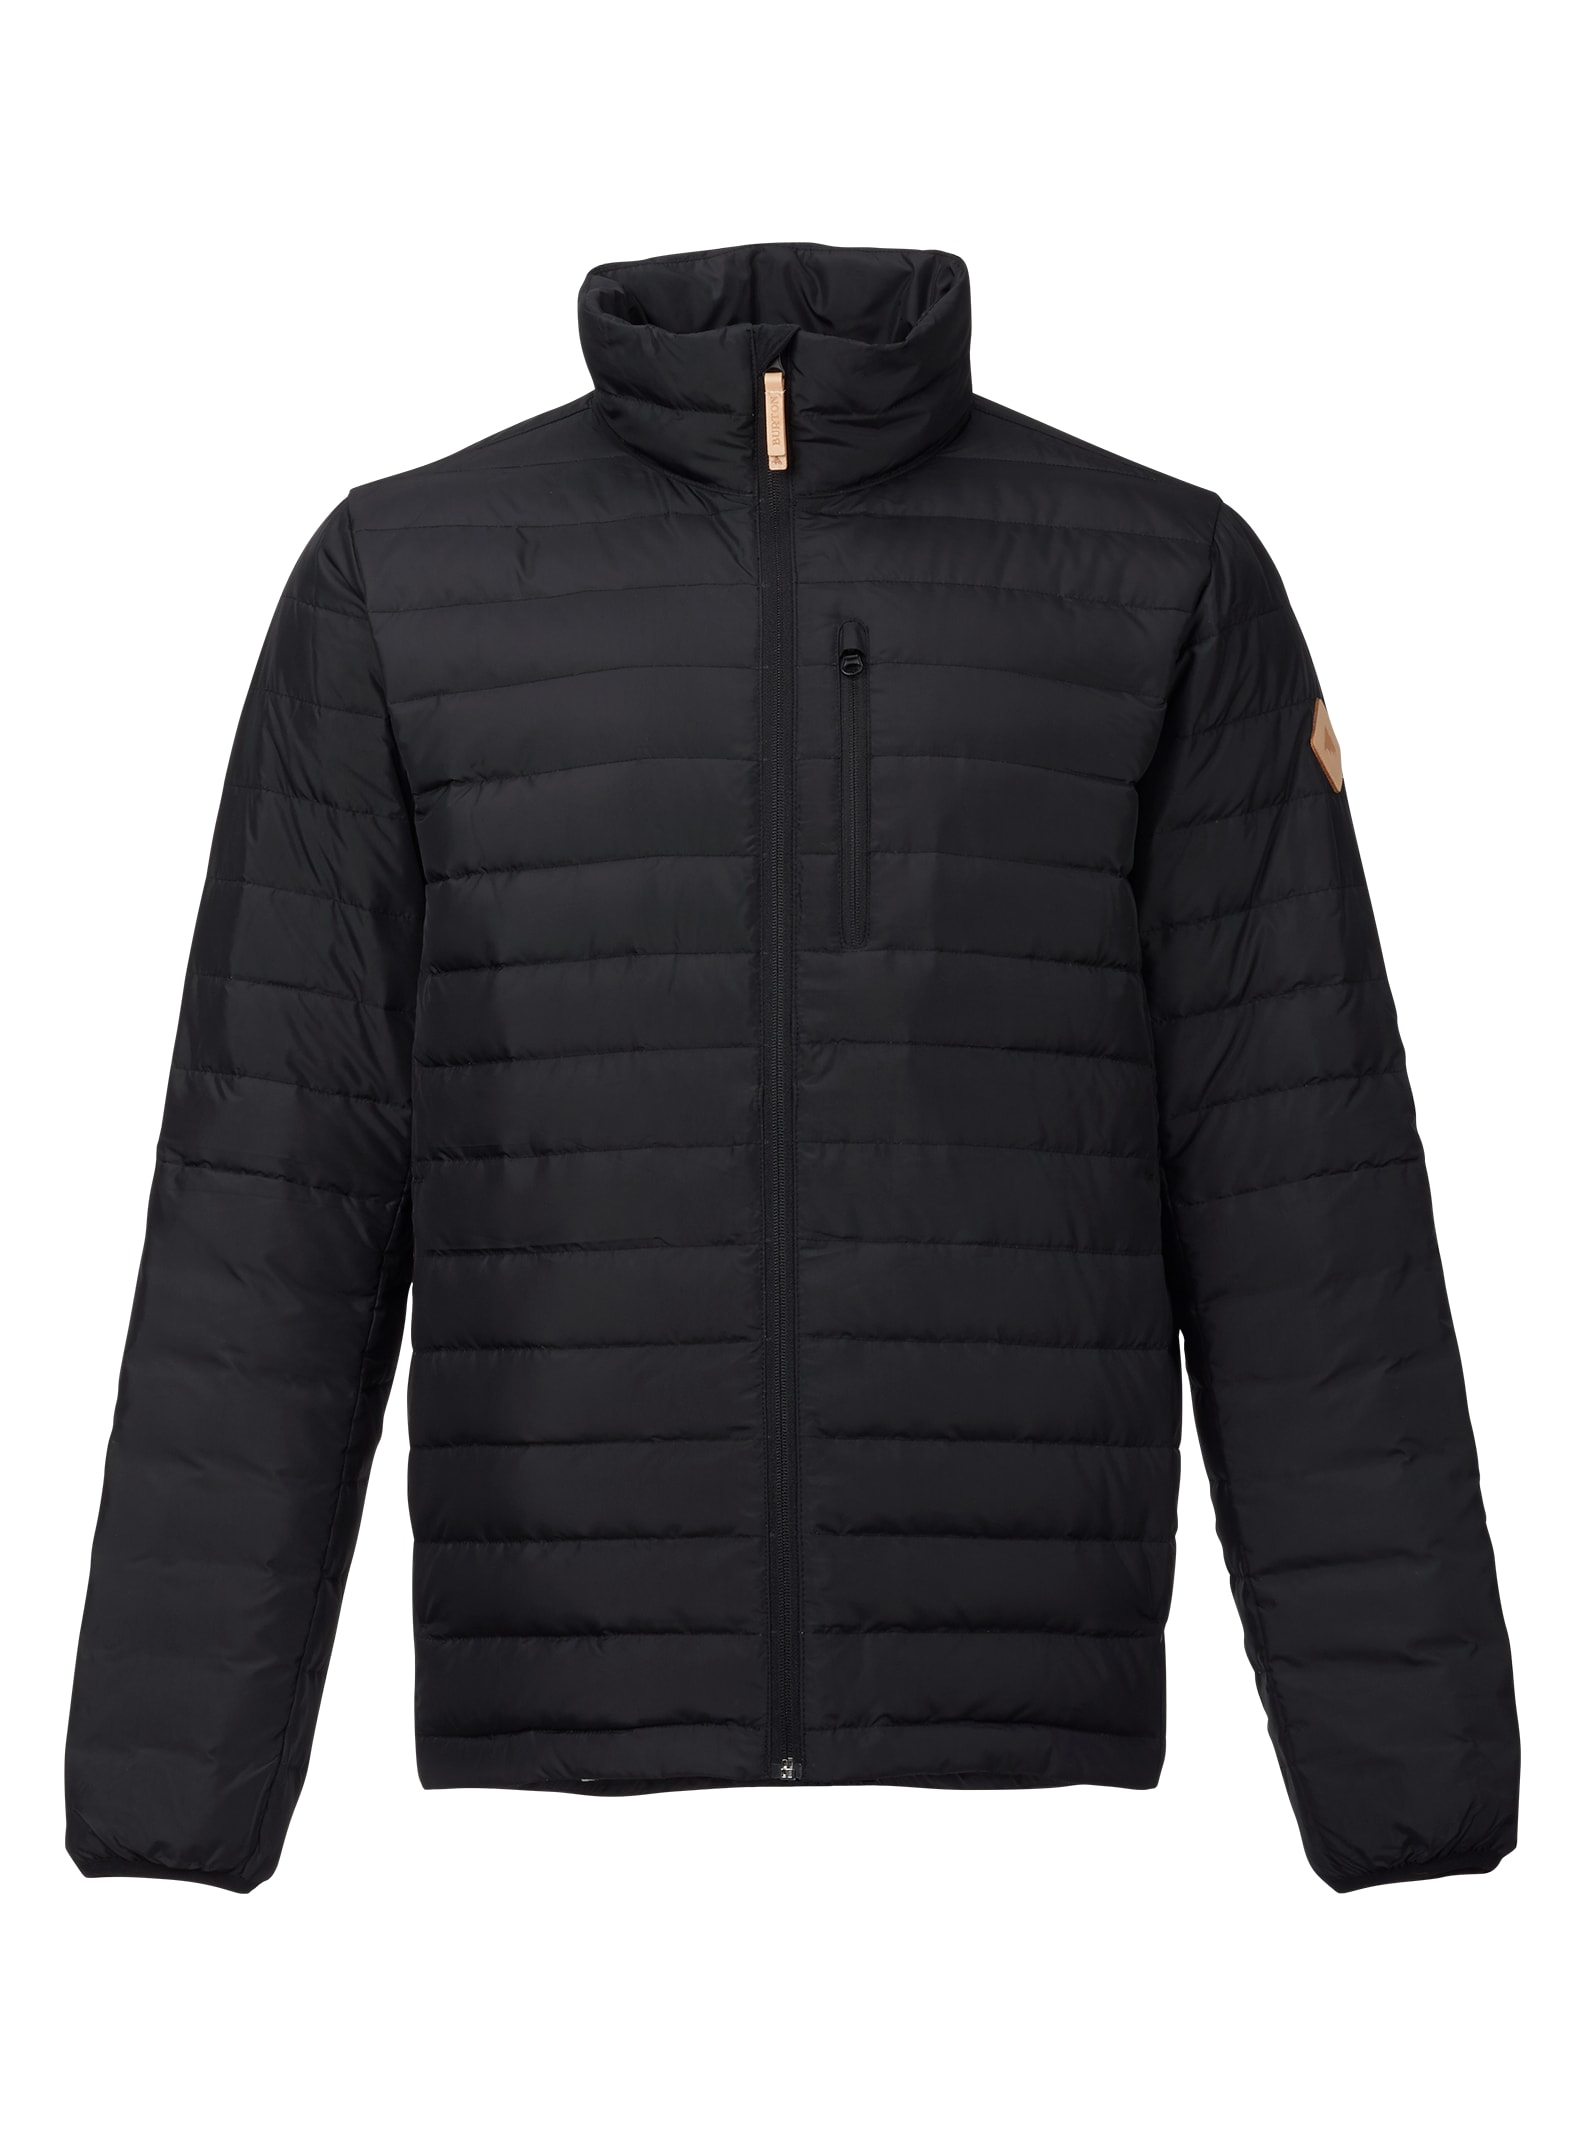 Burton – Manteau isolant léger Evergreen affichage en True Black